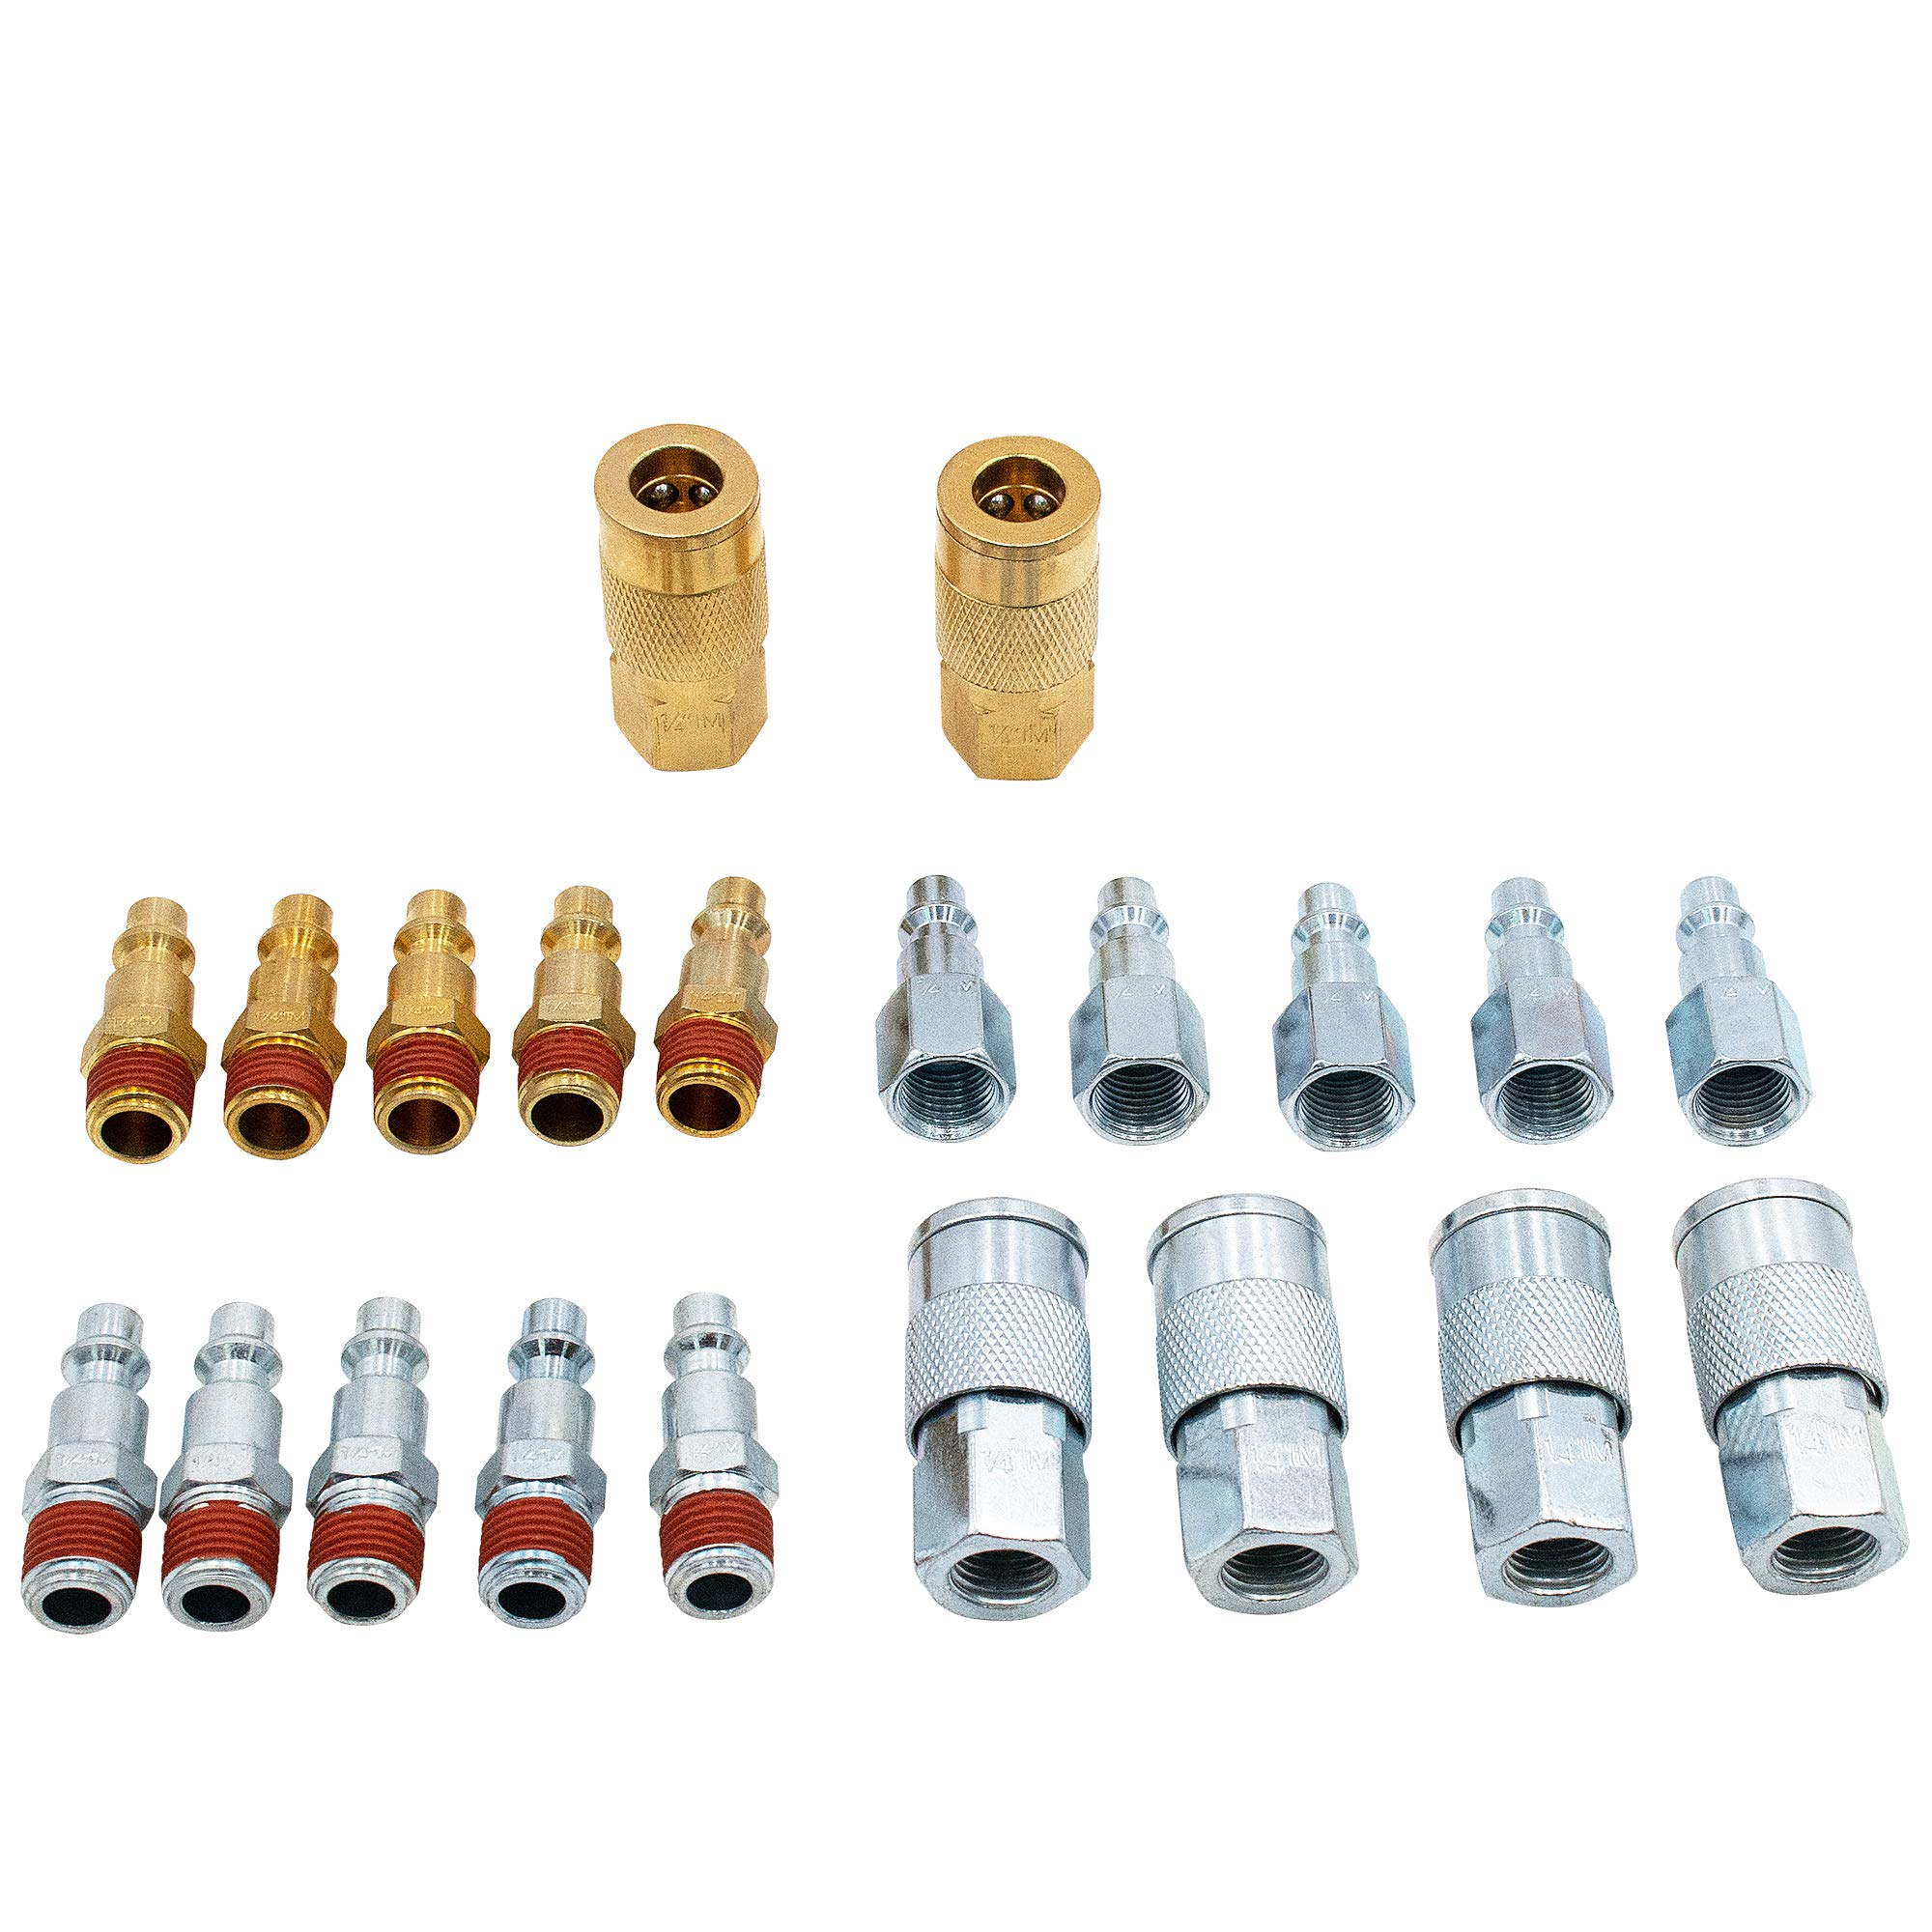 AUTOMAN Coupler Plug Kit - 21pcs Air Quick Coupler & Plug Kit With Storage Case,I/M Type,1/4 in NPT,Air Tool Fittings,ATMSW-07.